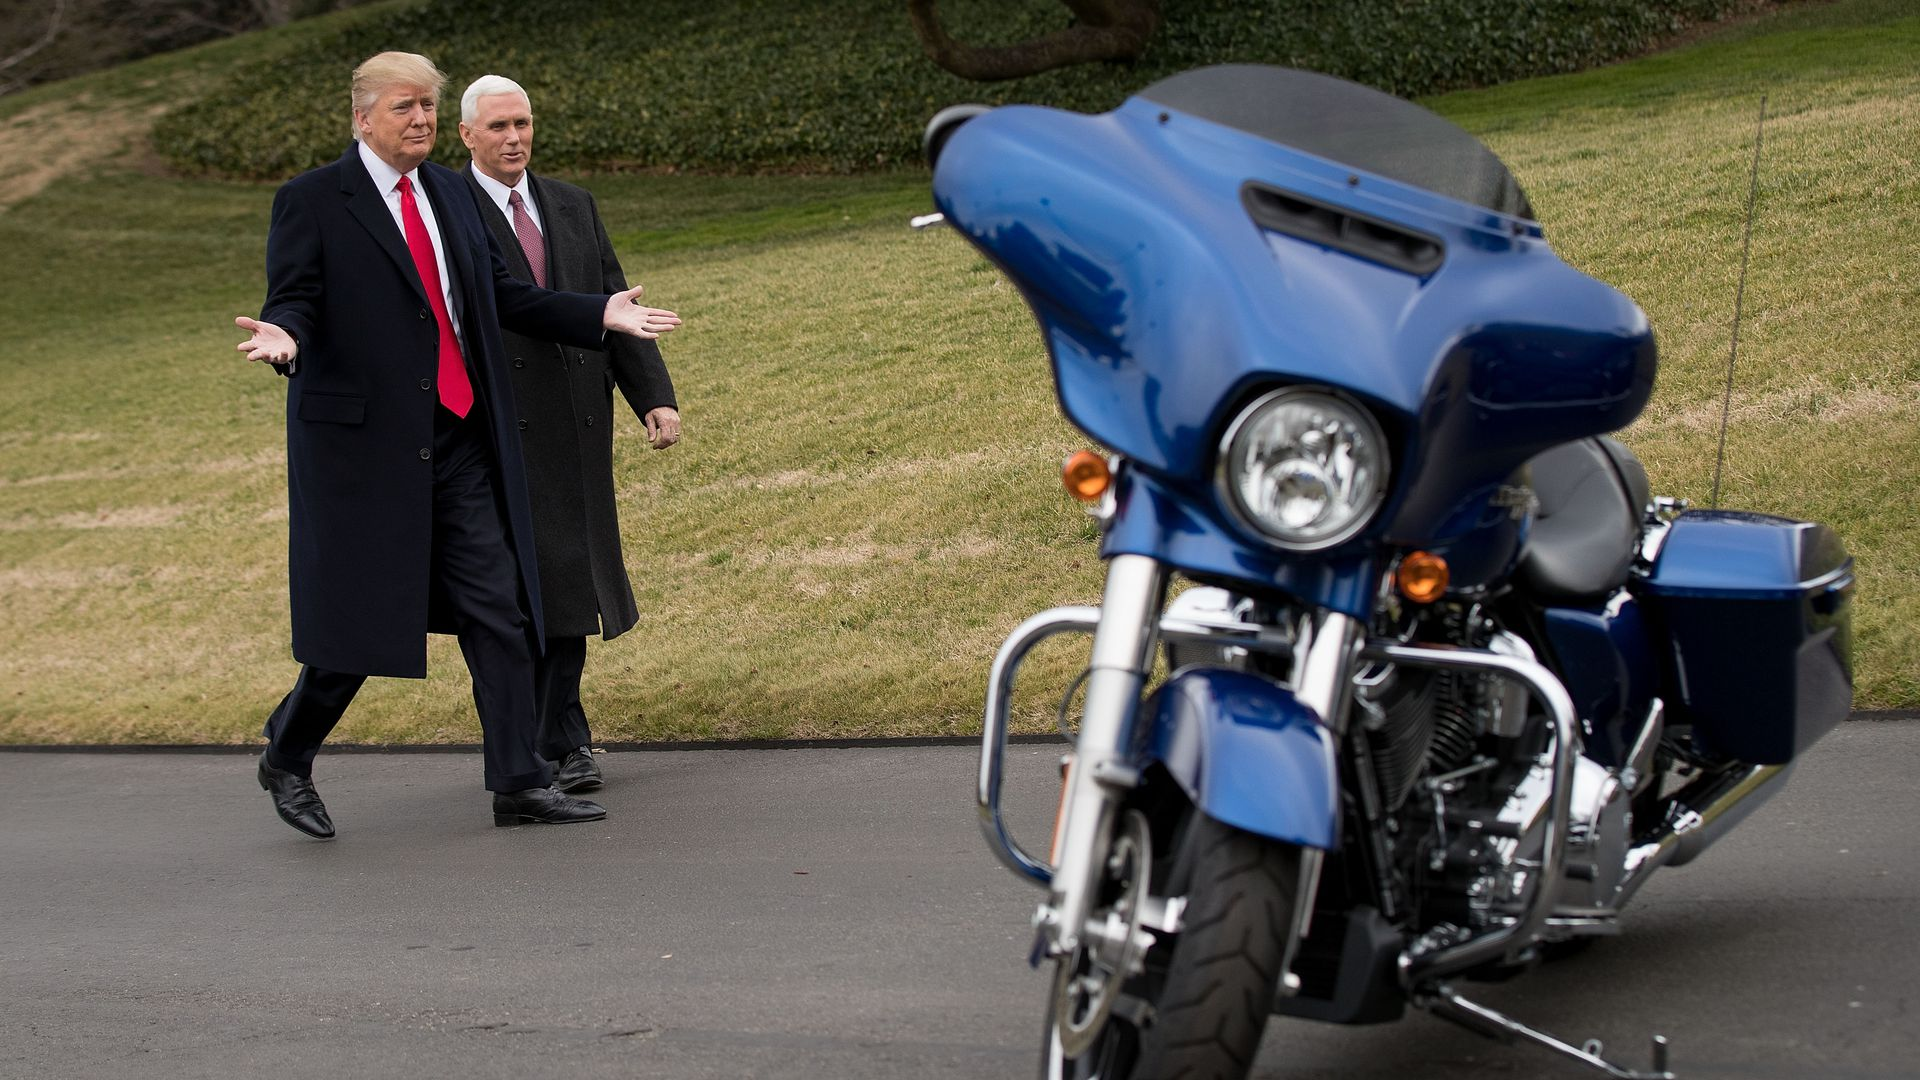 President Trump and VP Pence approach a Harley-Davidson motorcycle.